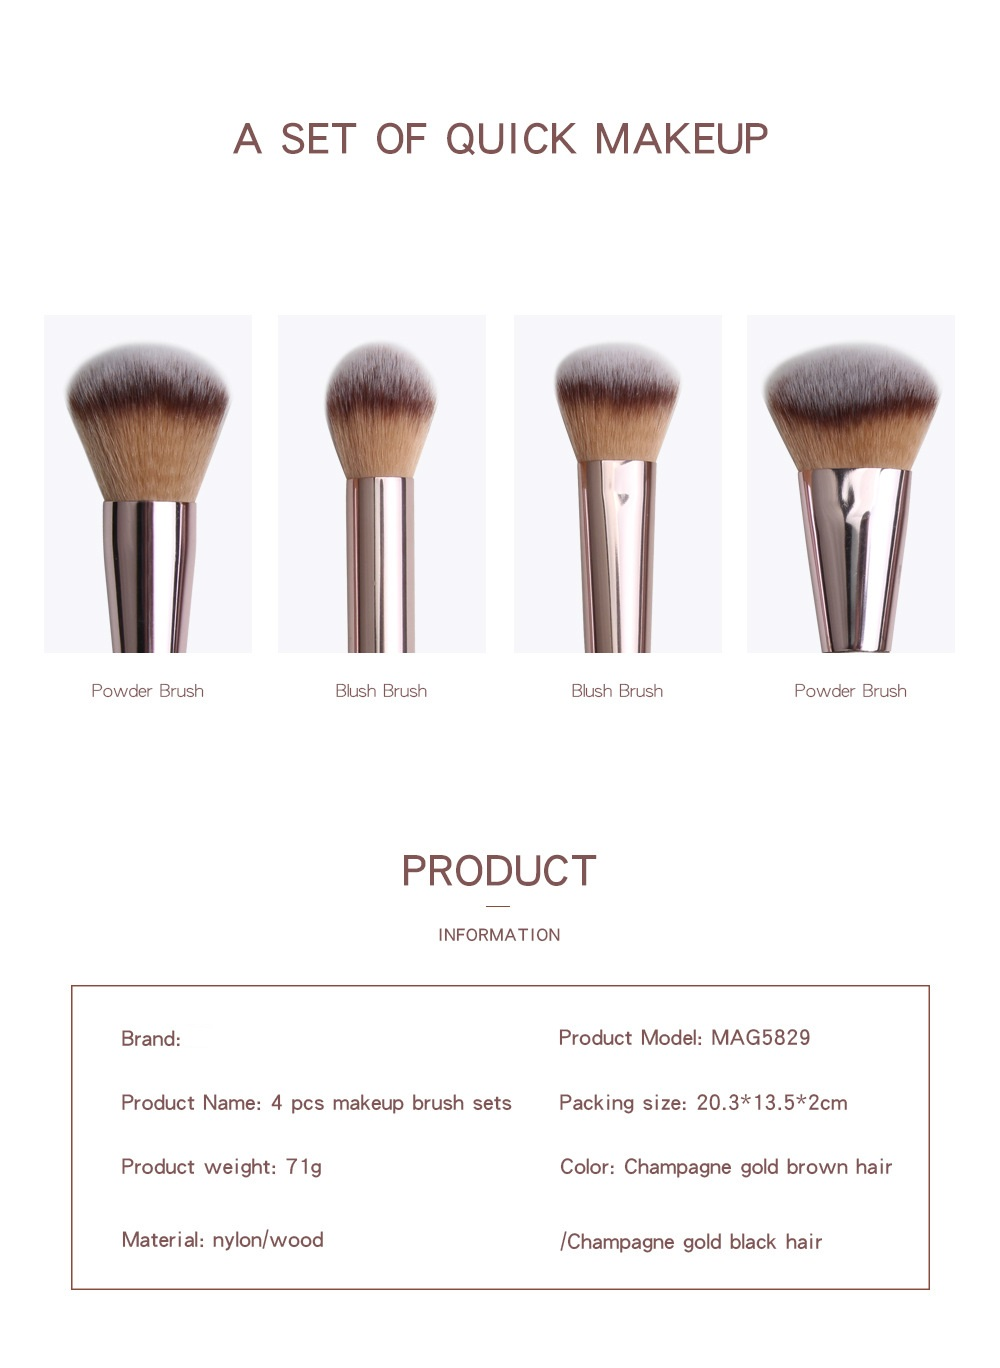 4 Piece Champagne Gold Makeup Brushes set name